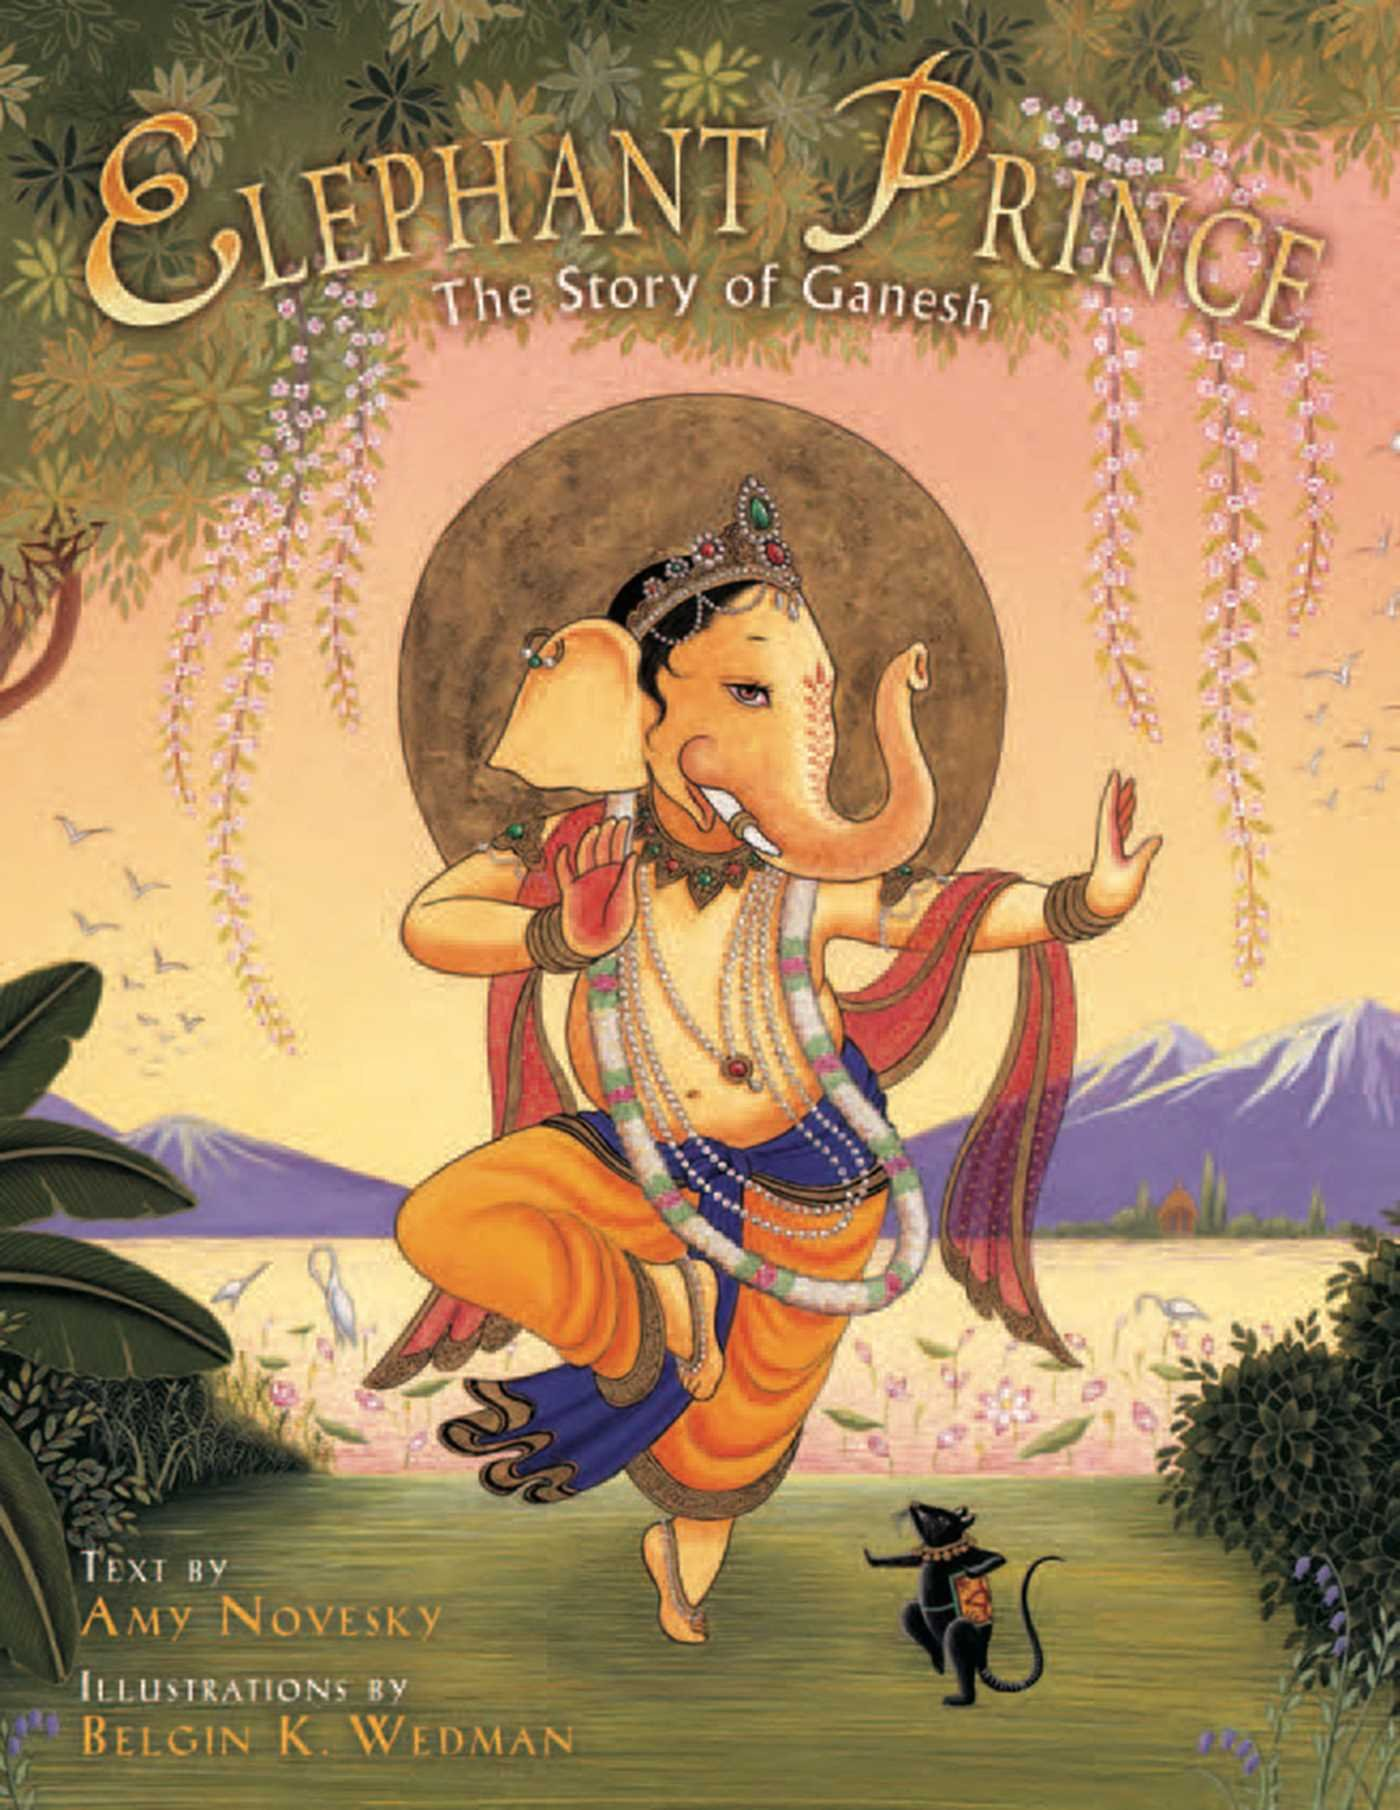 Elephant Prince: The Story of Ganesh